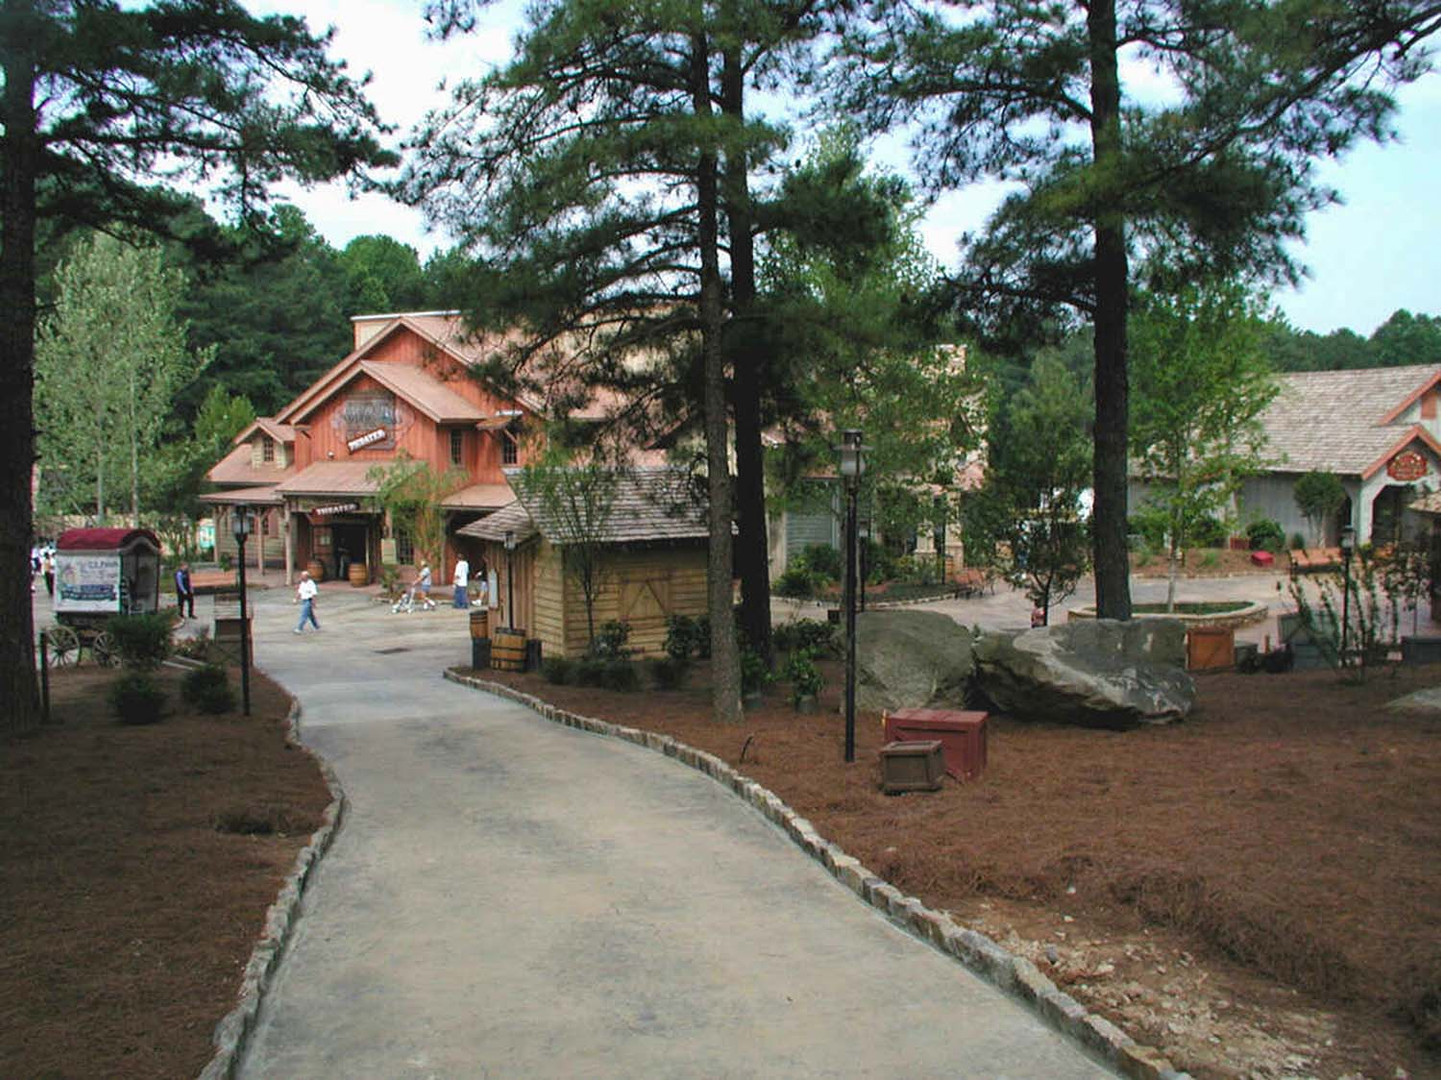 Crossroads at Stone Mountain Park